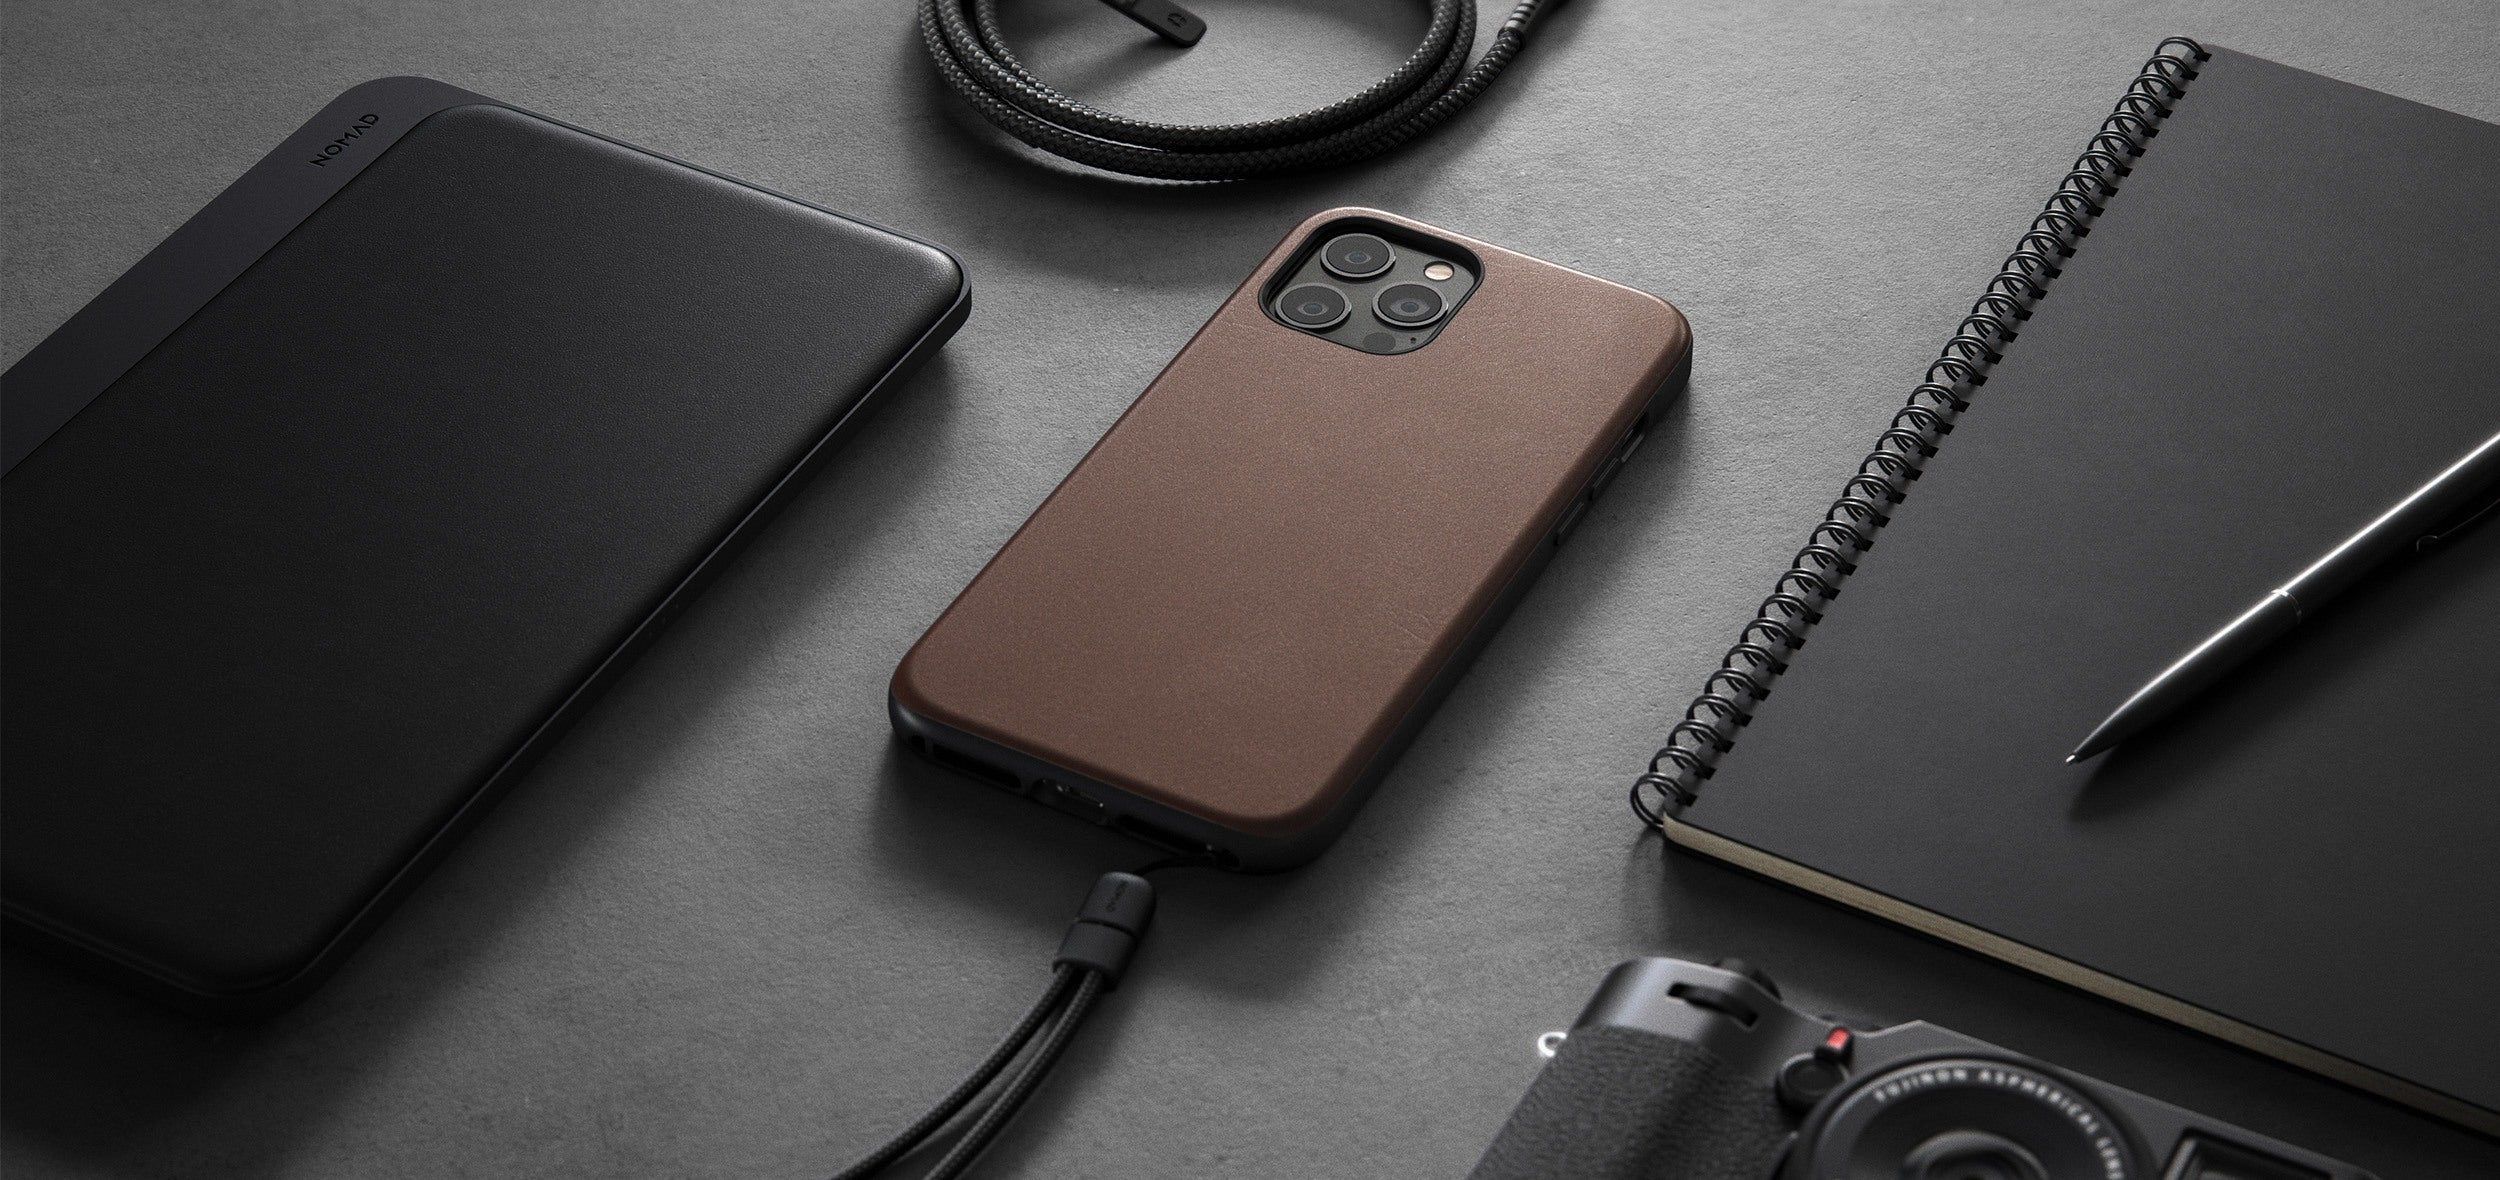 https://cdn.shopify.com/s/files/1/0384/6721/files/iPhone_12_Series_-_Rugged_Case_-_Lifestyle_05_-_Rustic_Brown_Leather_-_DESKTOP.jpg?v=1602795157